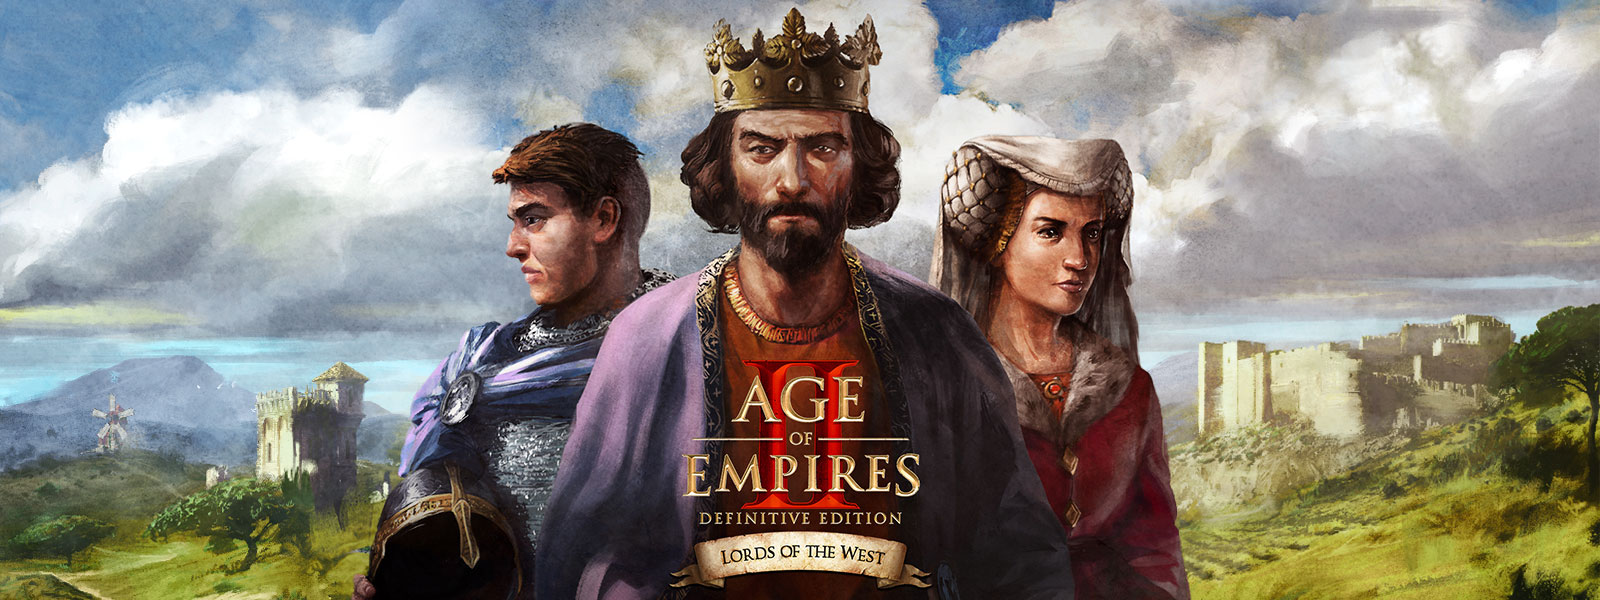 Age of Empires II: Definitive Edition. Lords of the West. Three characters posing.